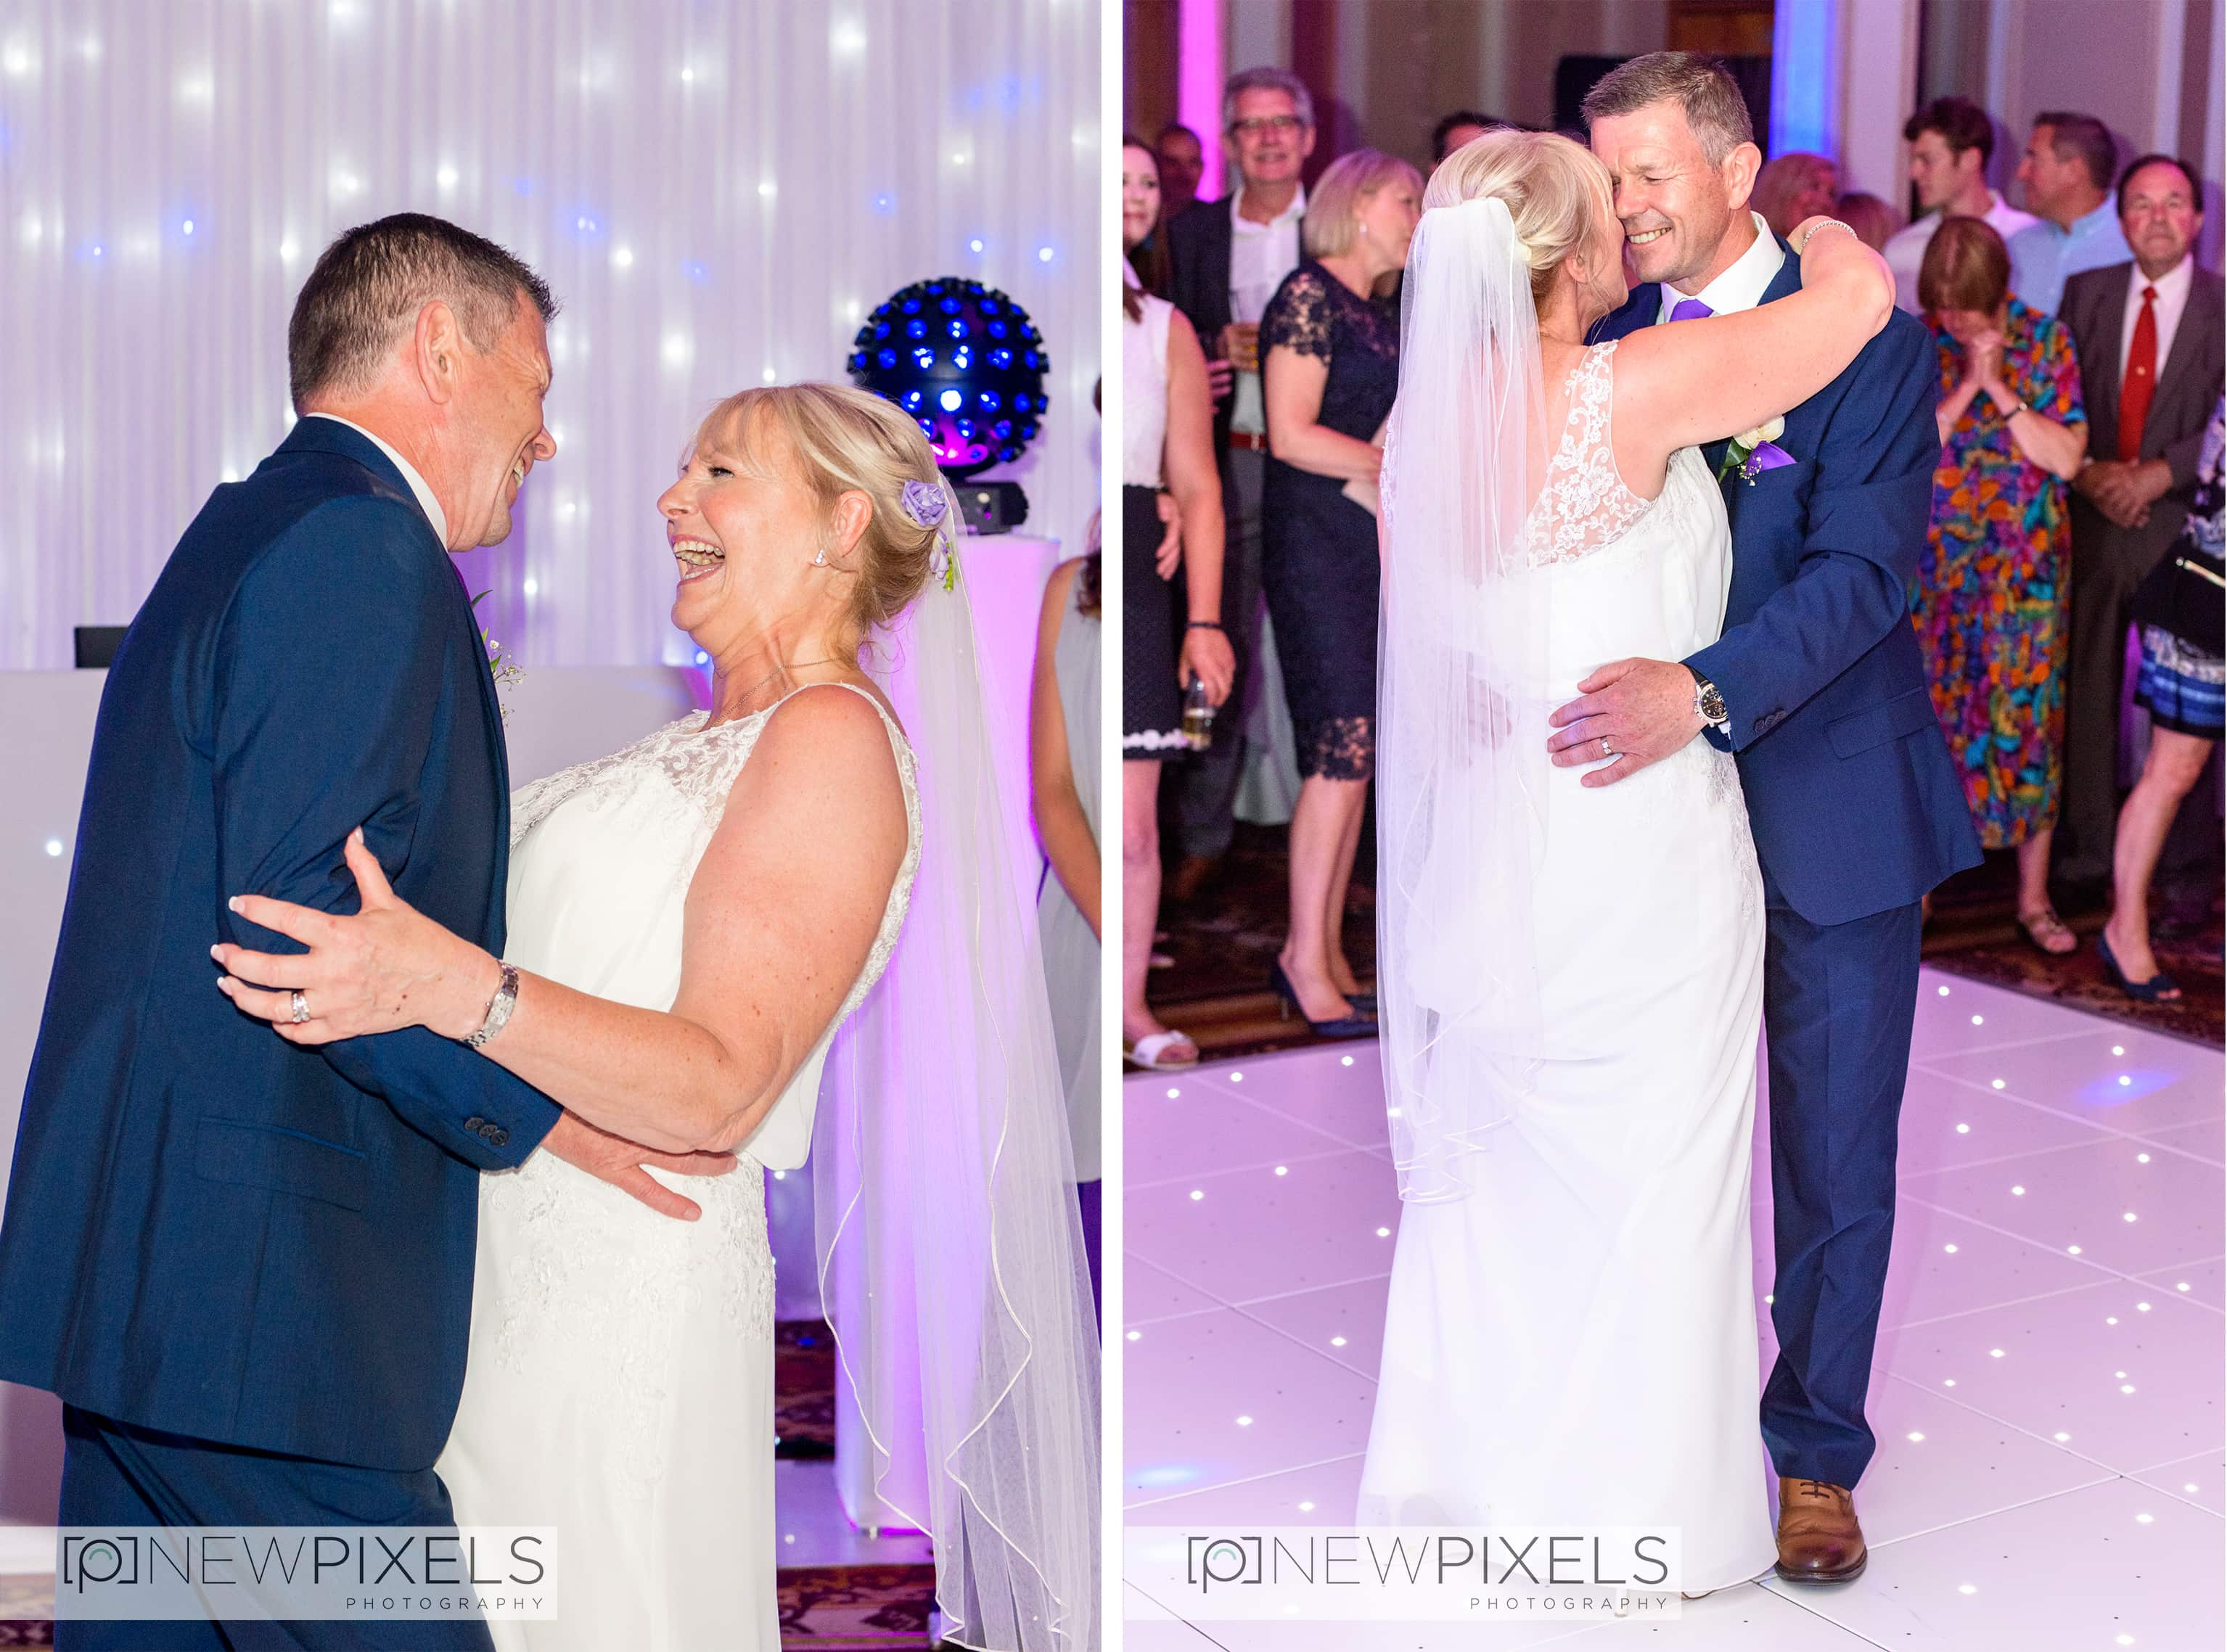 downhall wedding photographer21